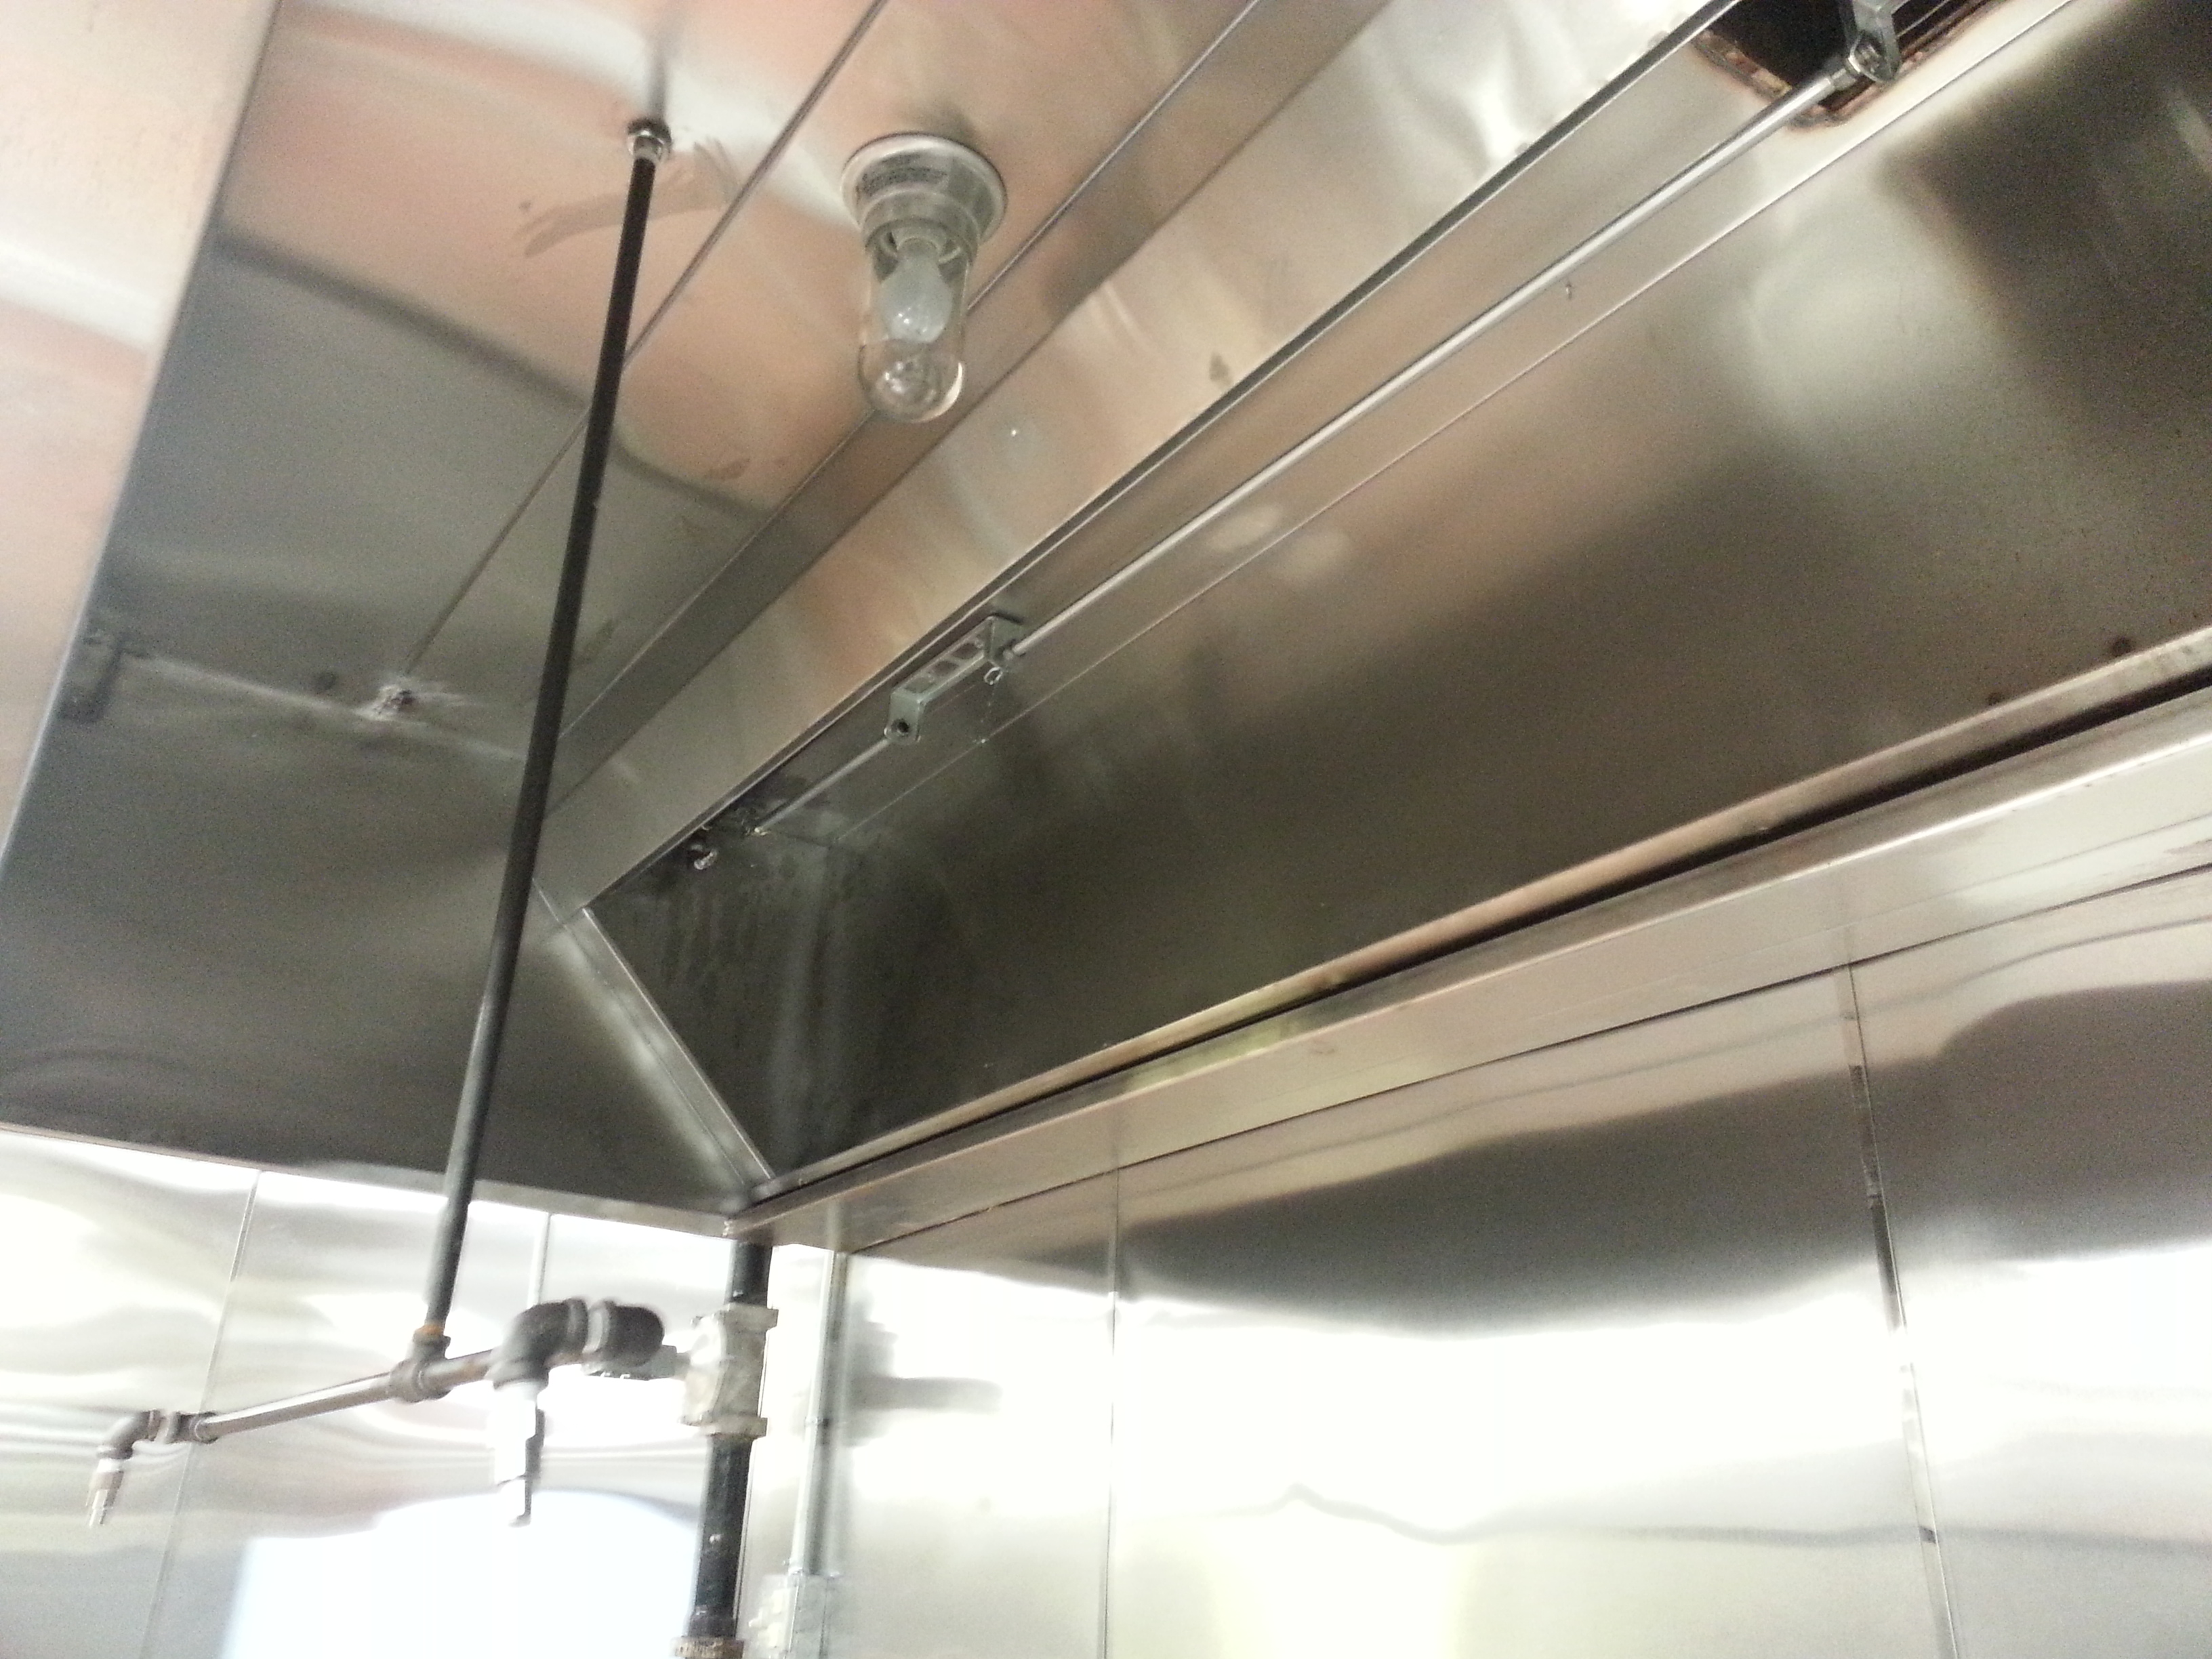 Captiveaire Kitchen Exhaust Vent Hood Fire Suppression System Dallas Plano  Mckinney Allen Hurst Texas  COMMERICALKITCHENEXHAUSTHOODFIRESUPPRESSIONDUCTSYSTEMS